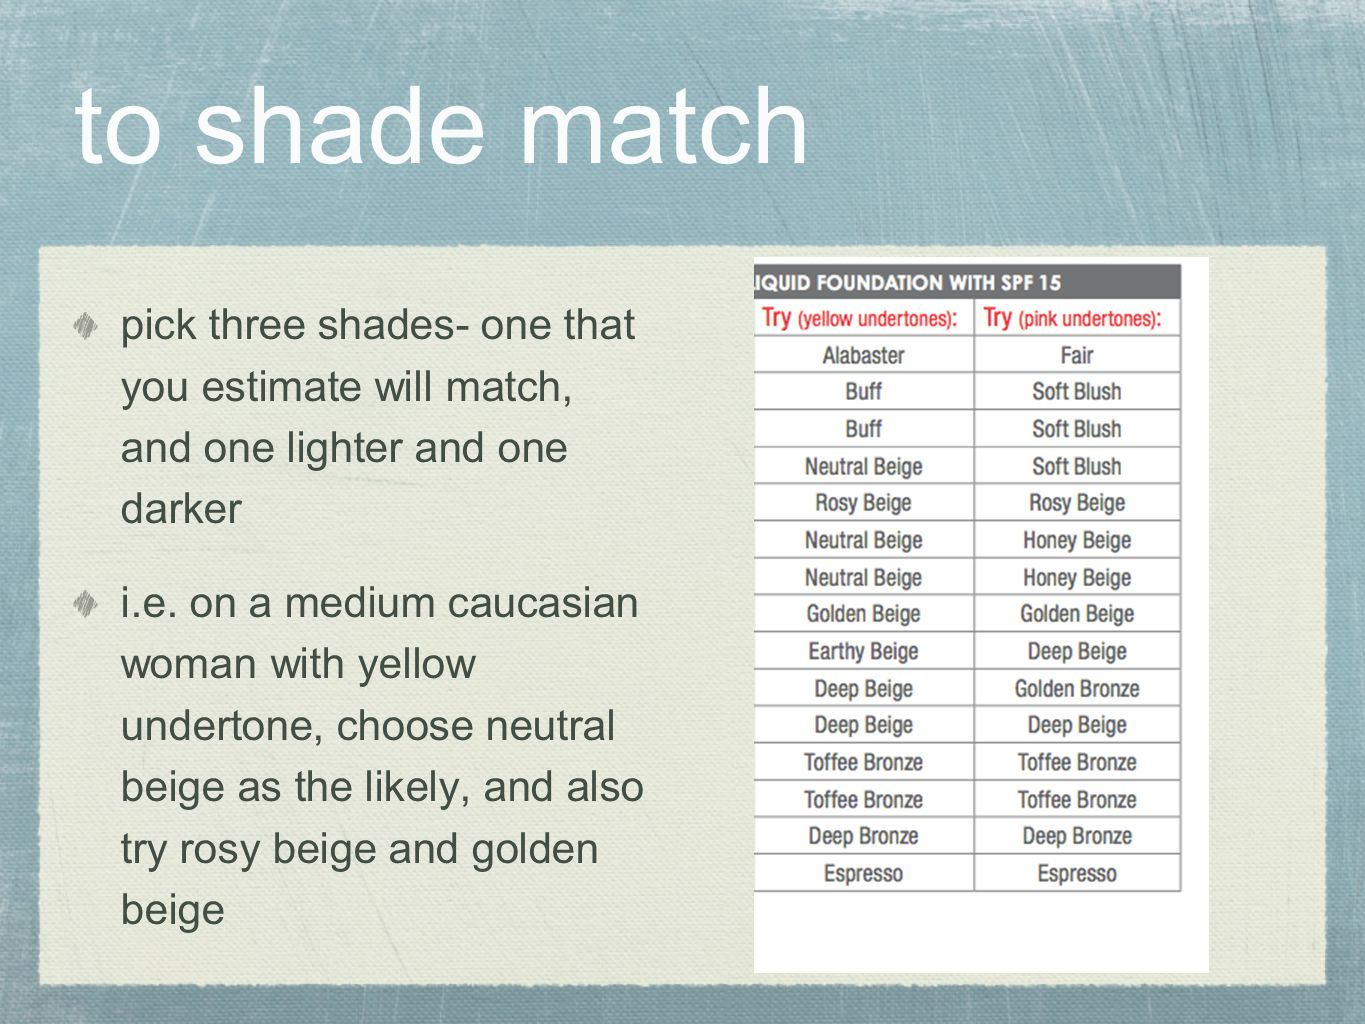 to shade match pick three shades- one that you estimate will match, and one lighter and one darker.